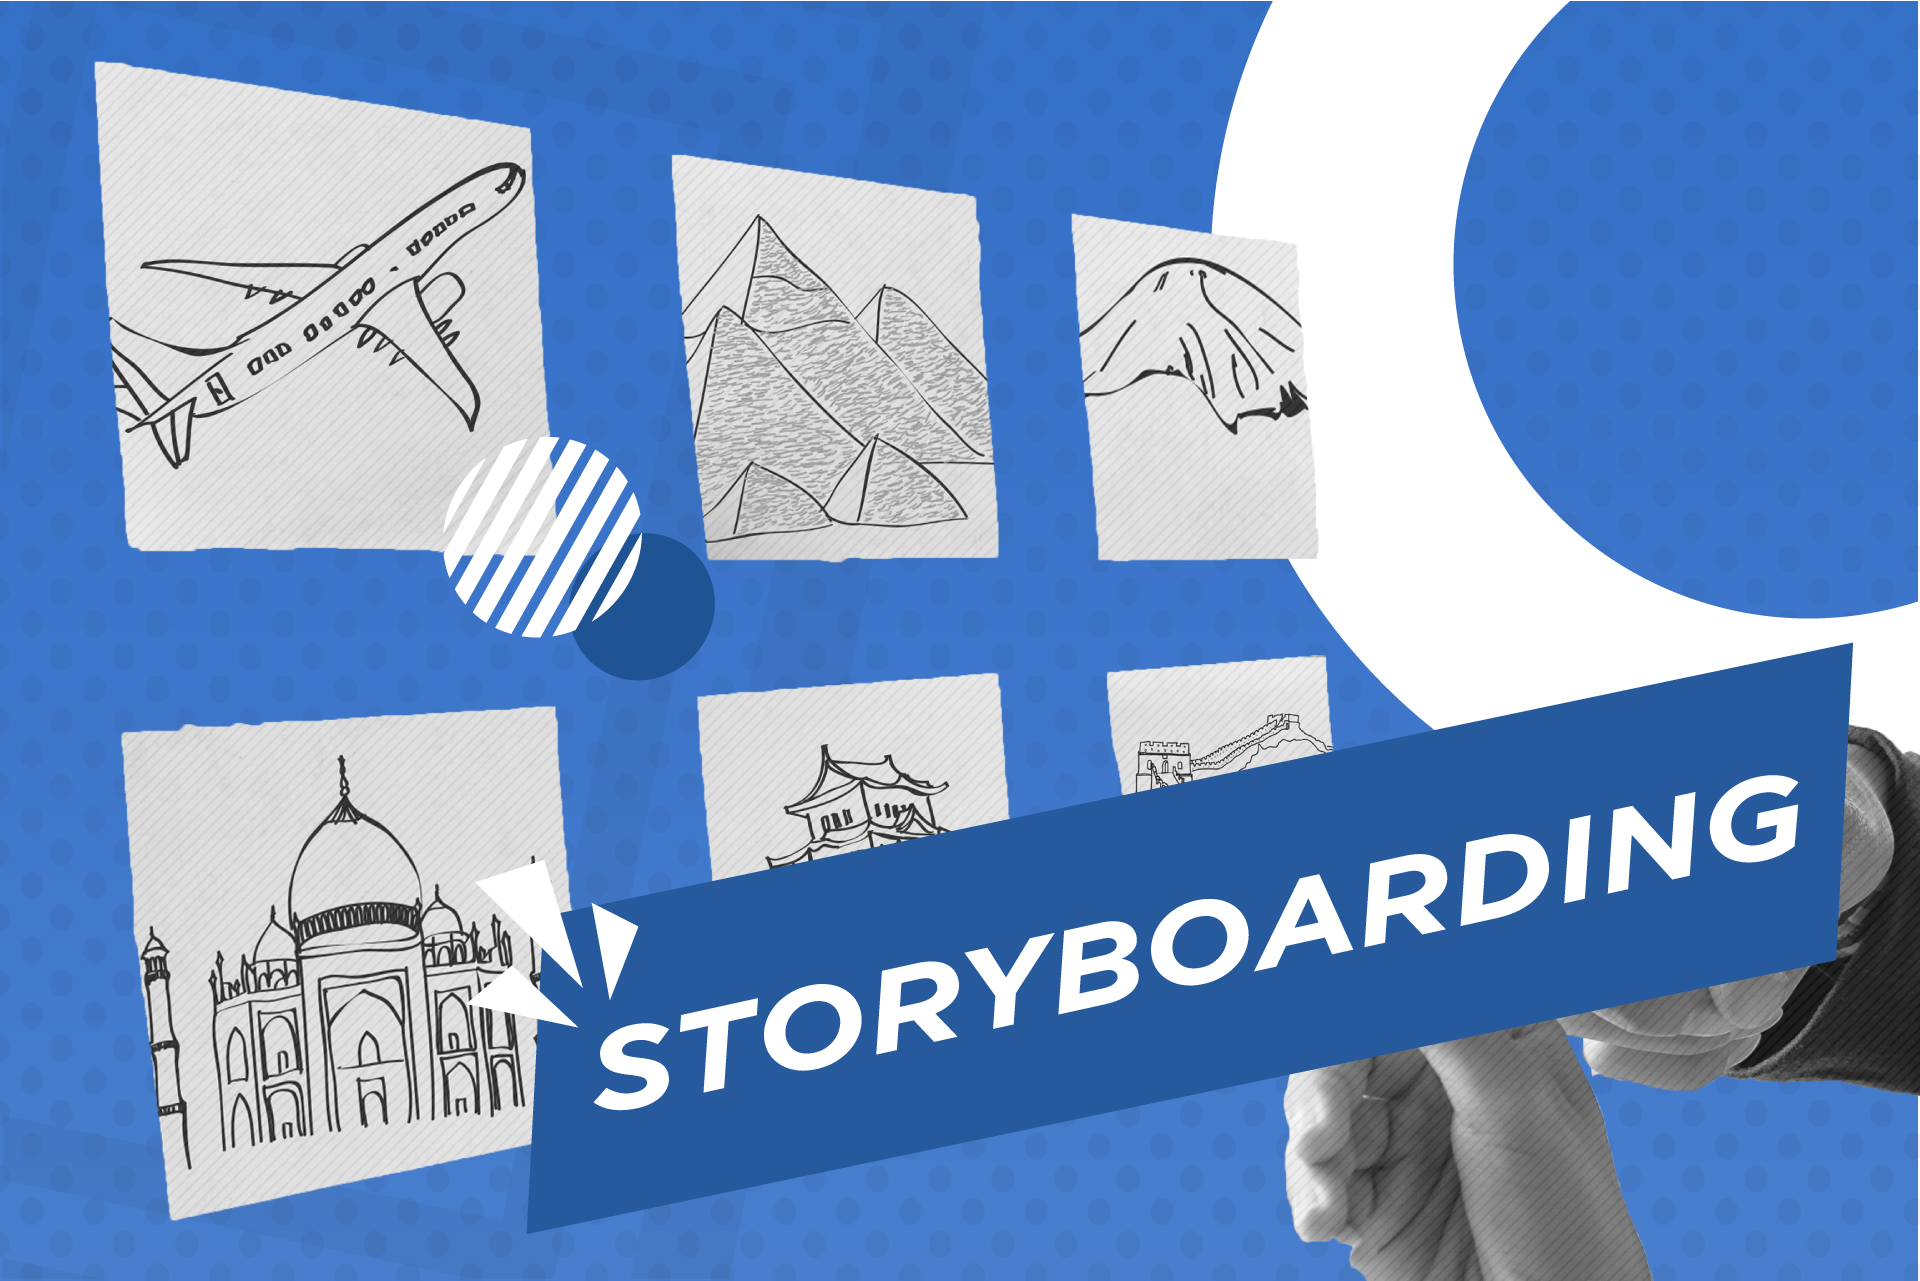 Storyboard for presenters